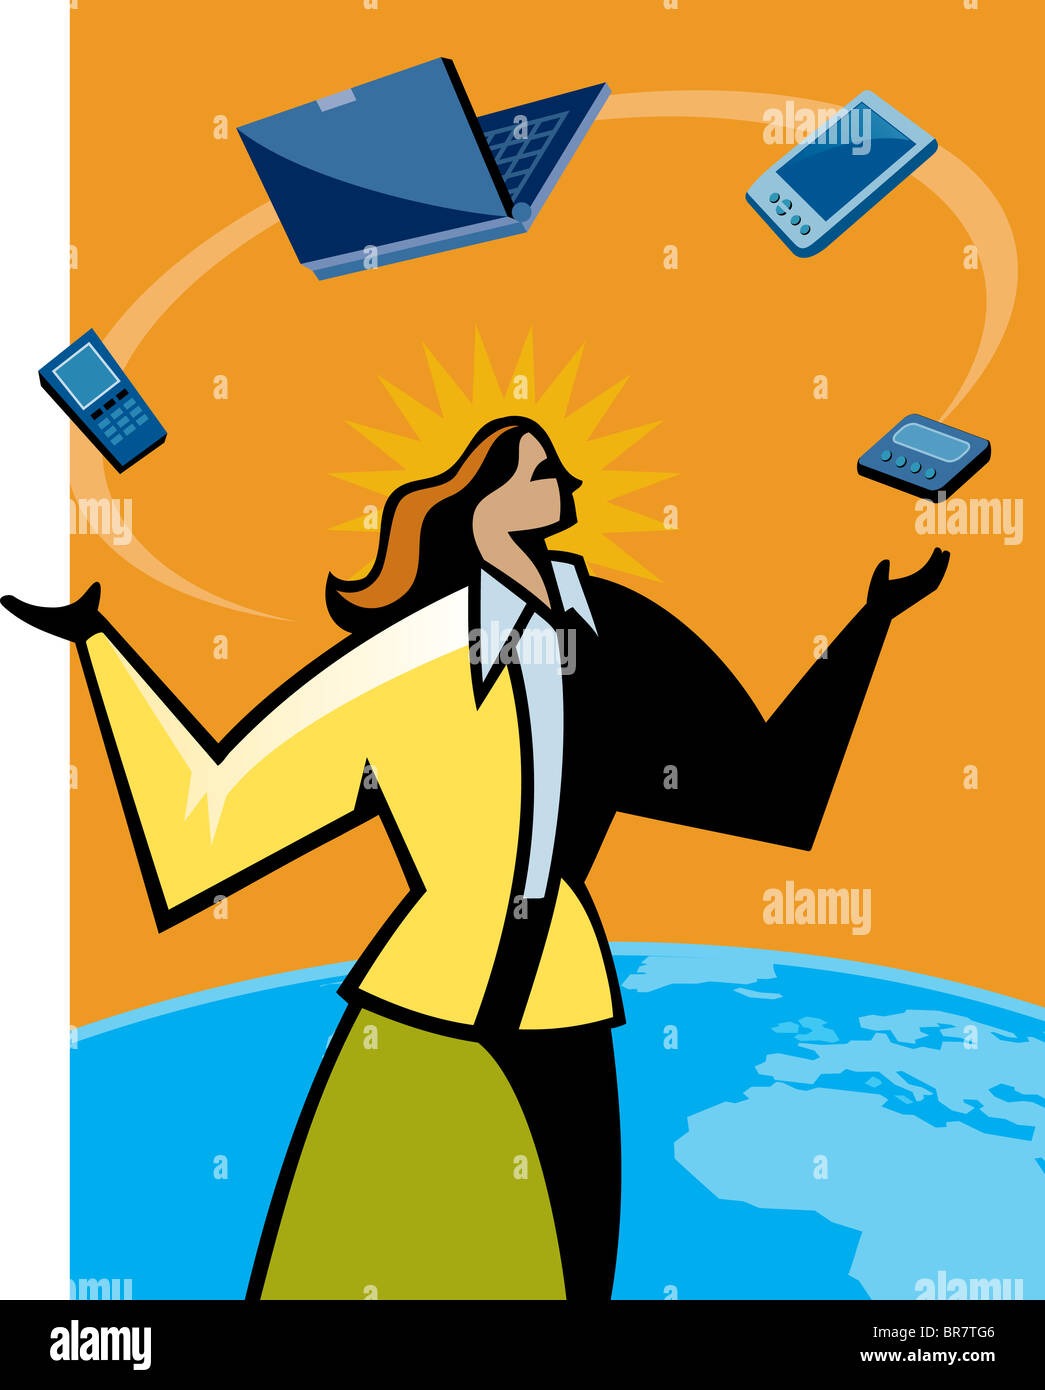 A woman juggling with different types of technology Stock Photo